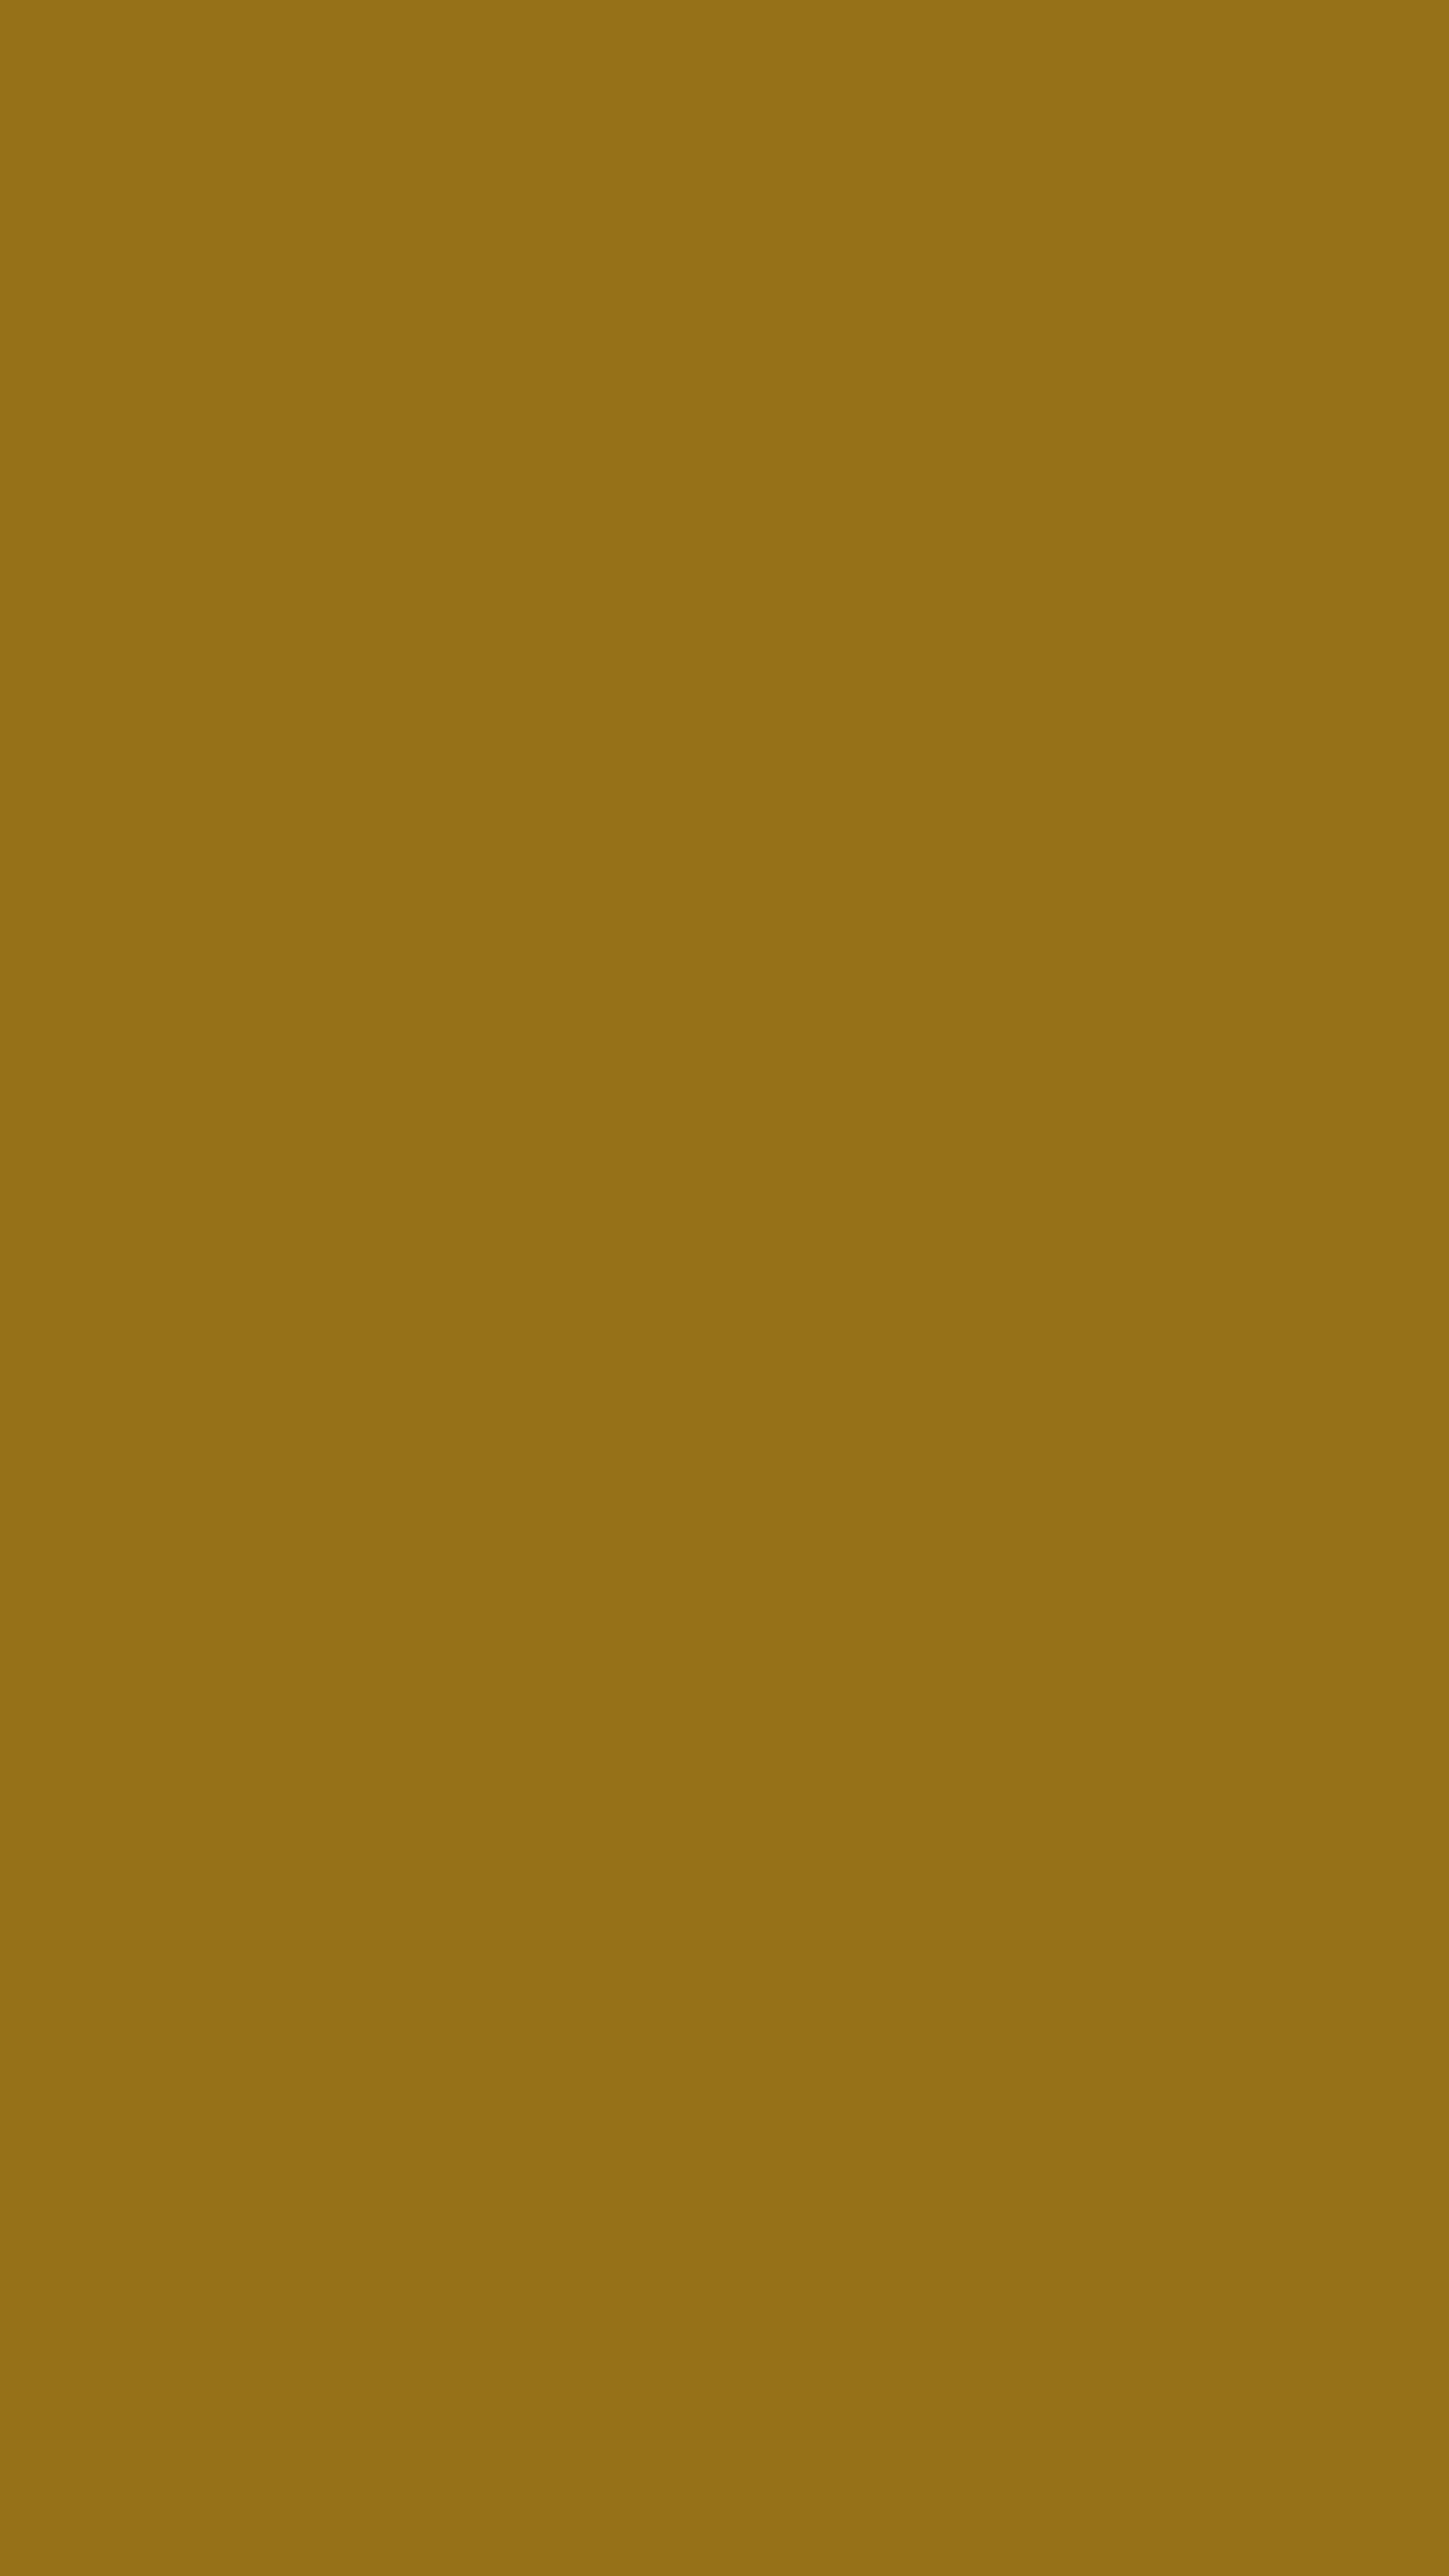 2160x3840 Bistre Brown Solid Color Background Wallpaper for Mobile Phone